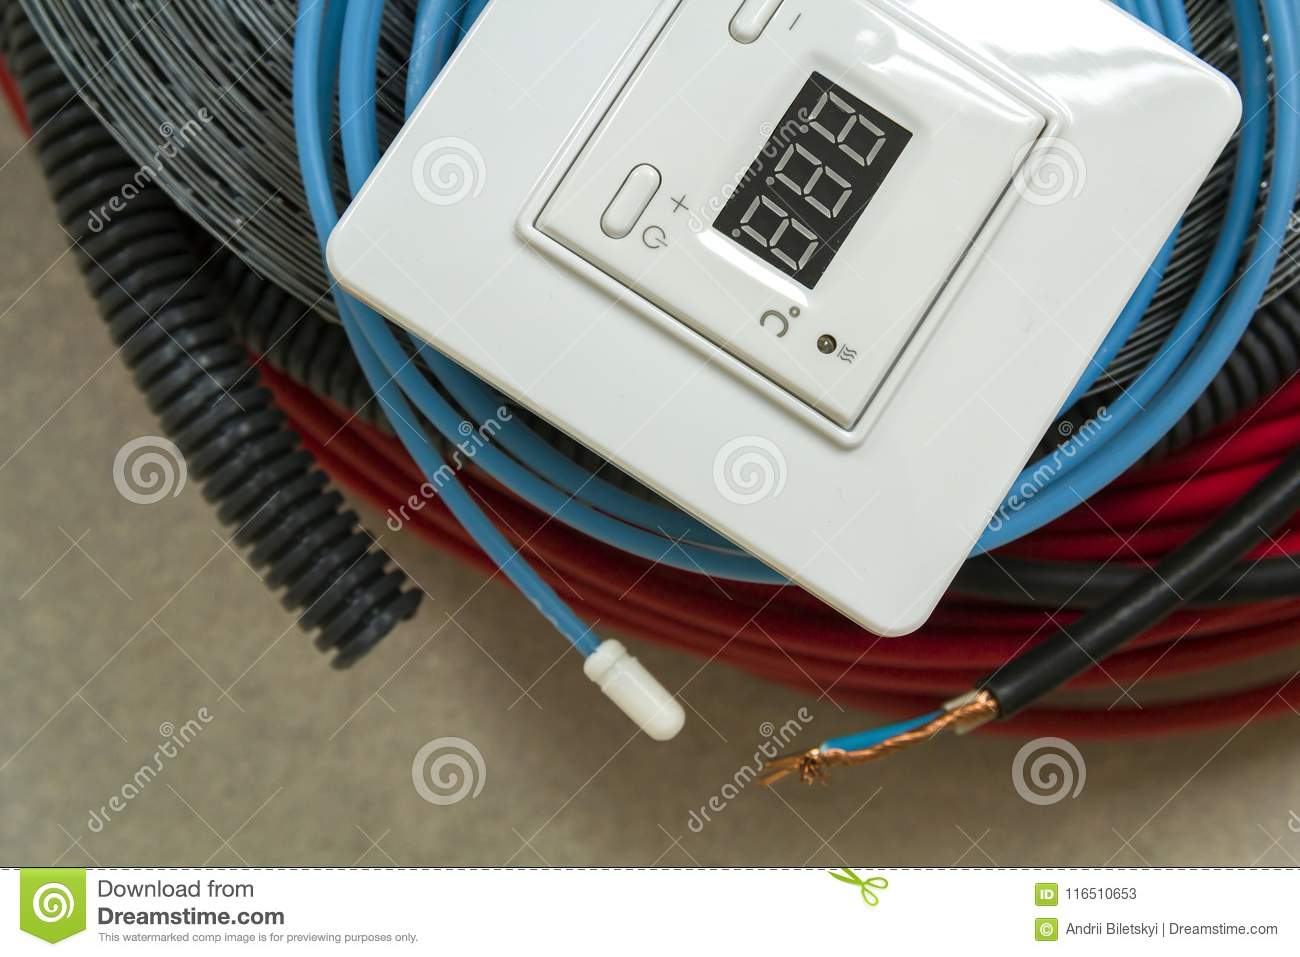 Heating Floor System Wires Cables And Control Panel Renovation Wiring A House Network Construction Concept Comfort